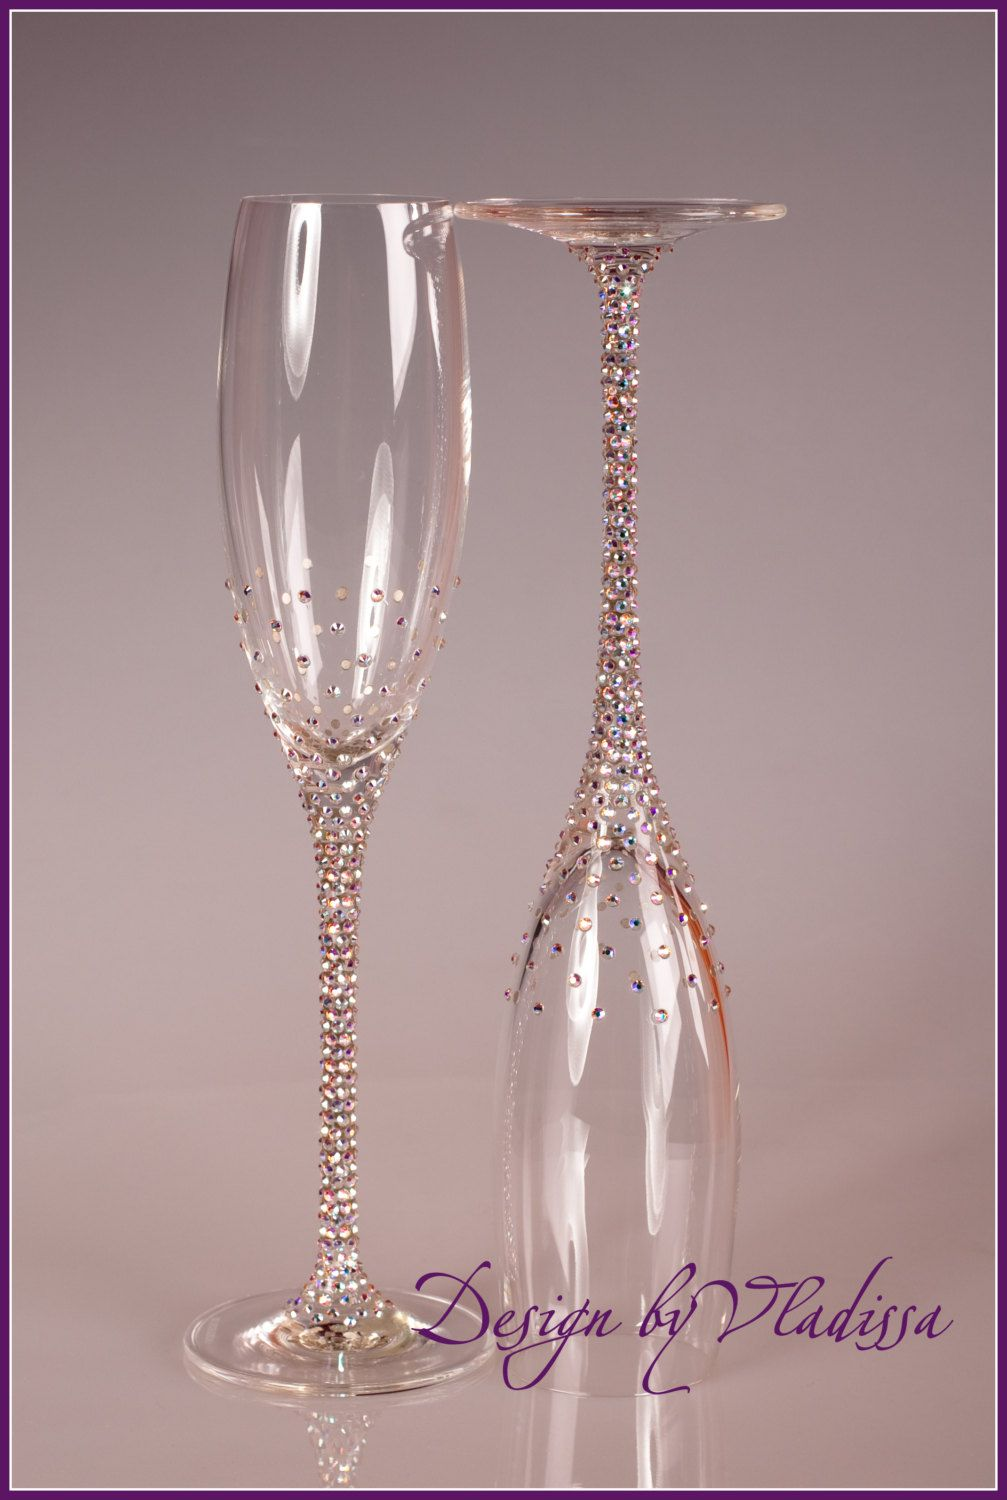 Swarovski Champagne Flutes I Feel Like I Could Do This Myself